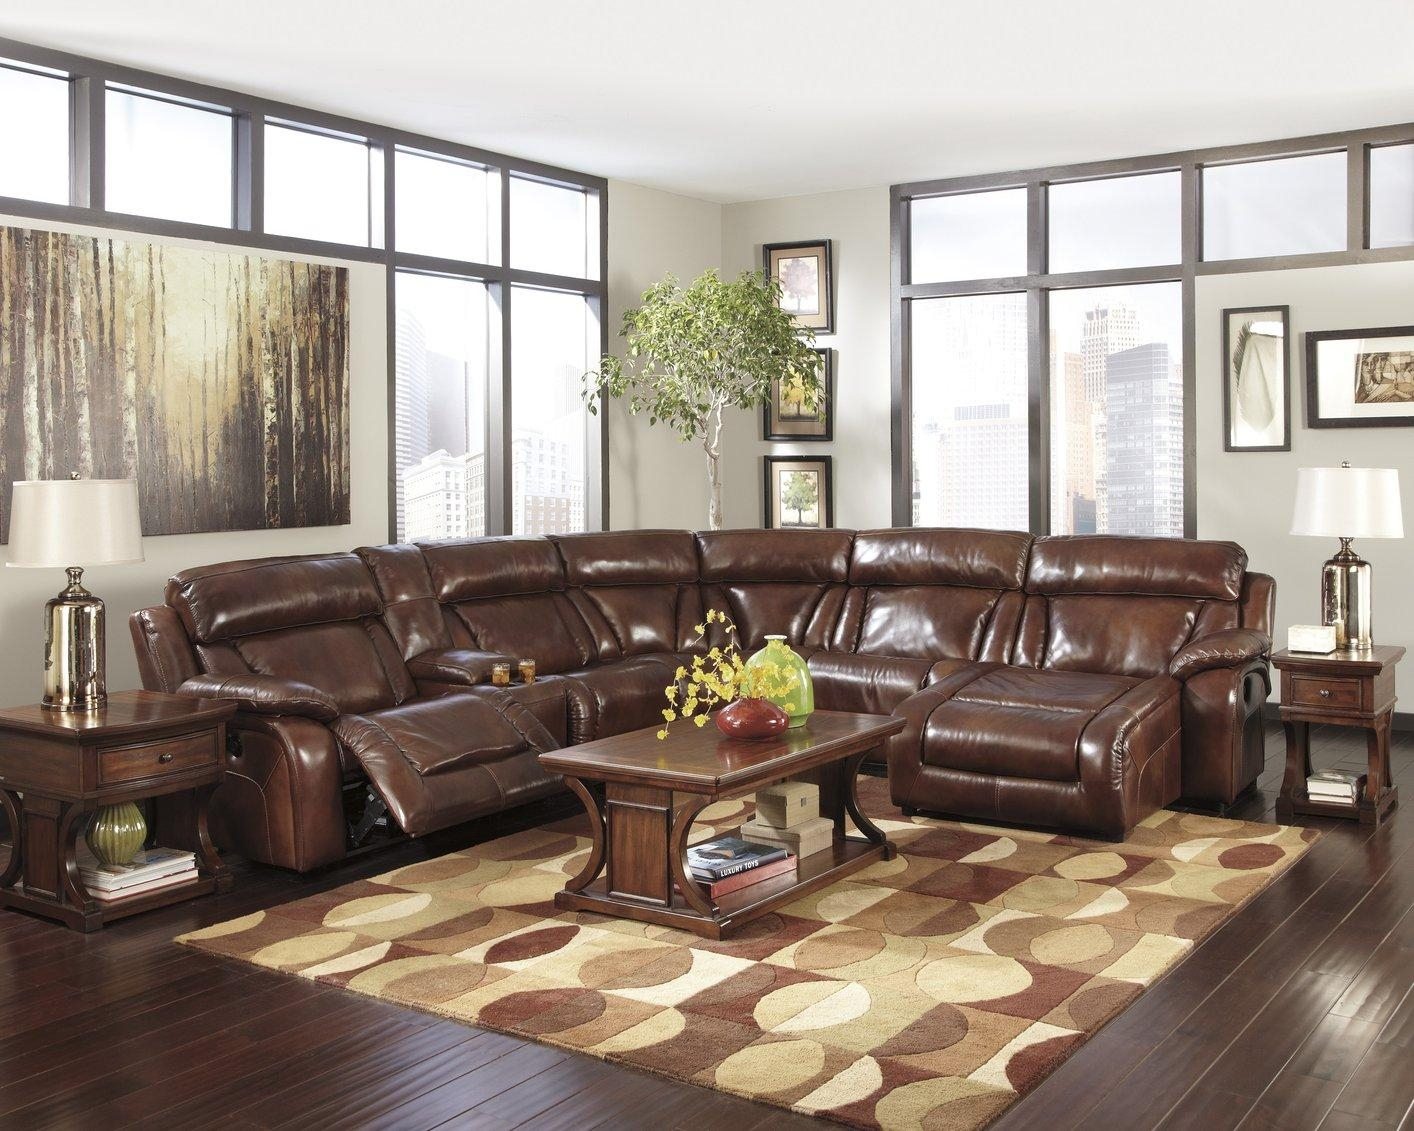 Sectional Sofa Clearance: The Best Way To Get High Quality Sofa In Pertaining To High End Leather Sectionals (Image 19 of 20)